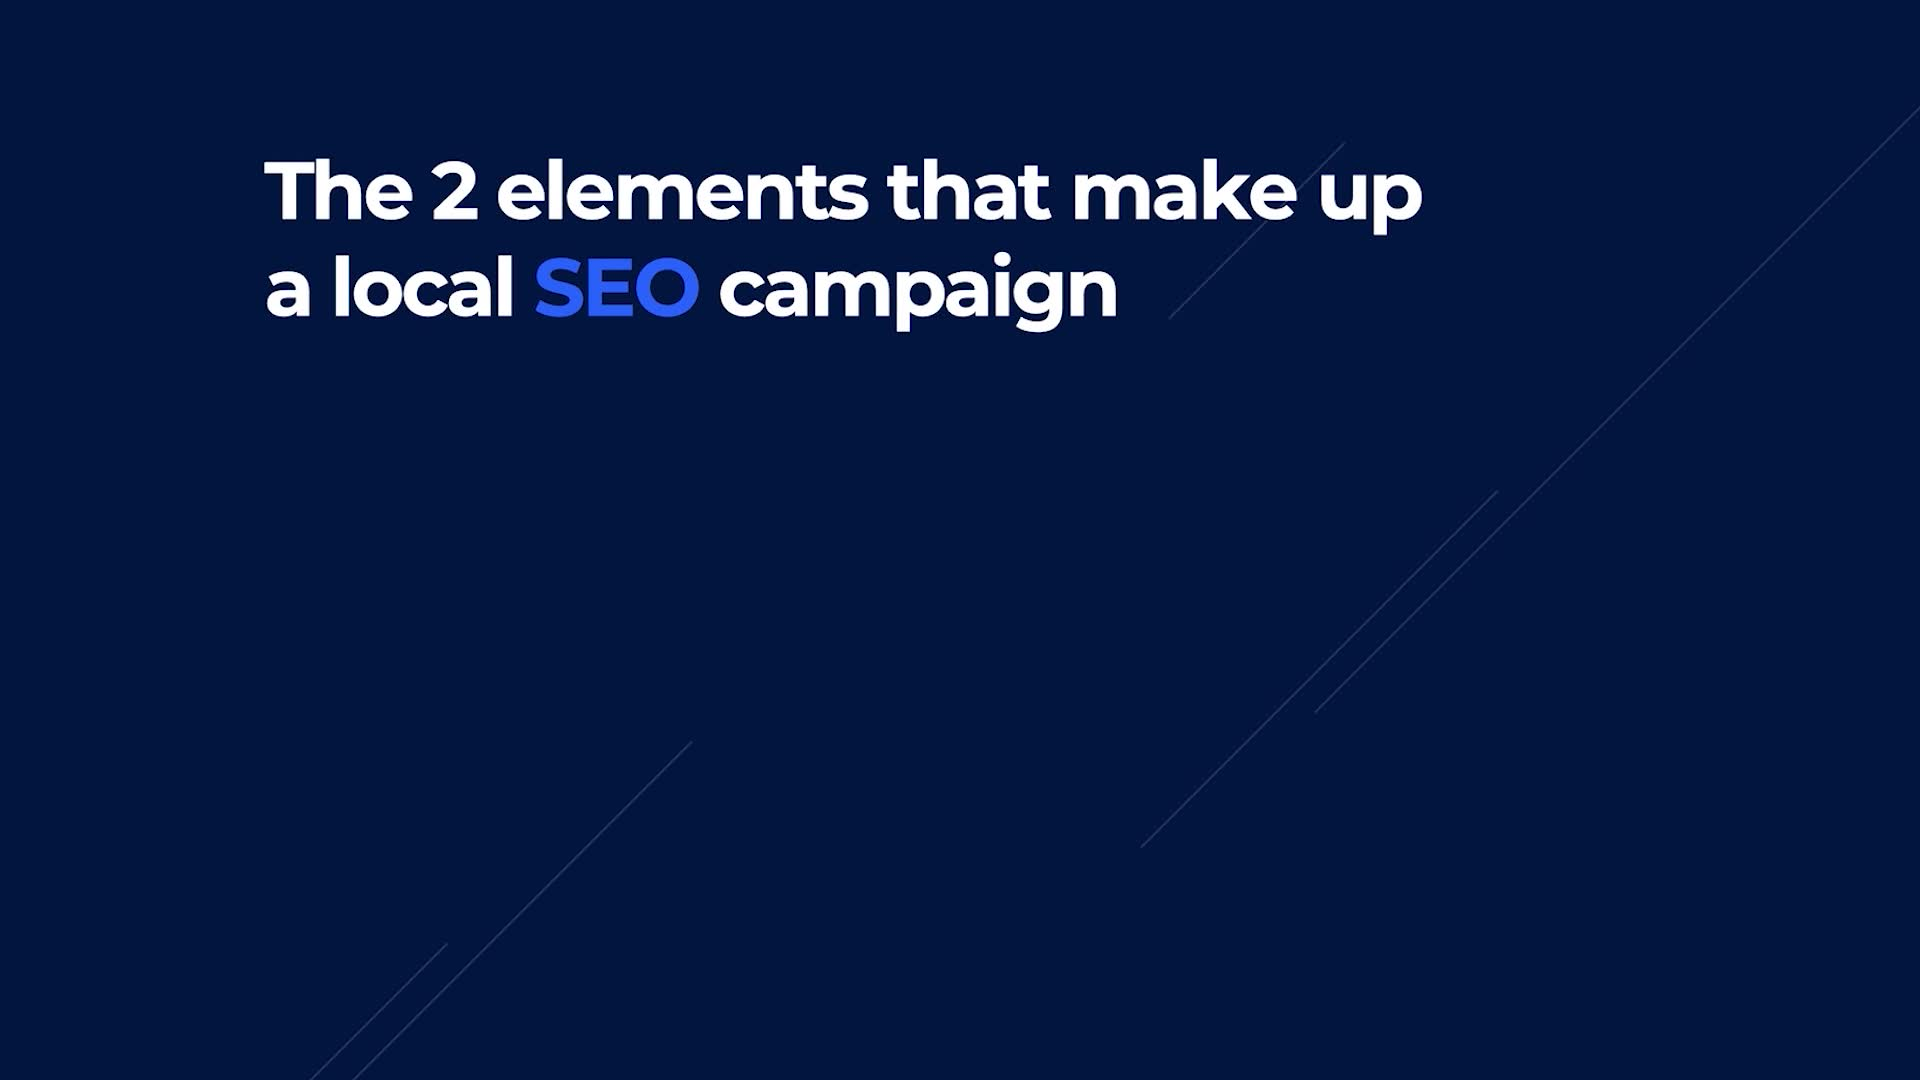 The Two Elements That Make Up a Local SEO Campaign